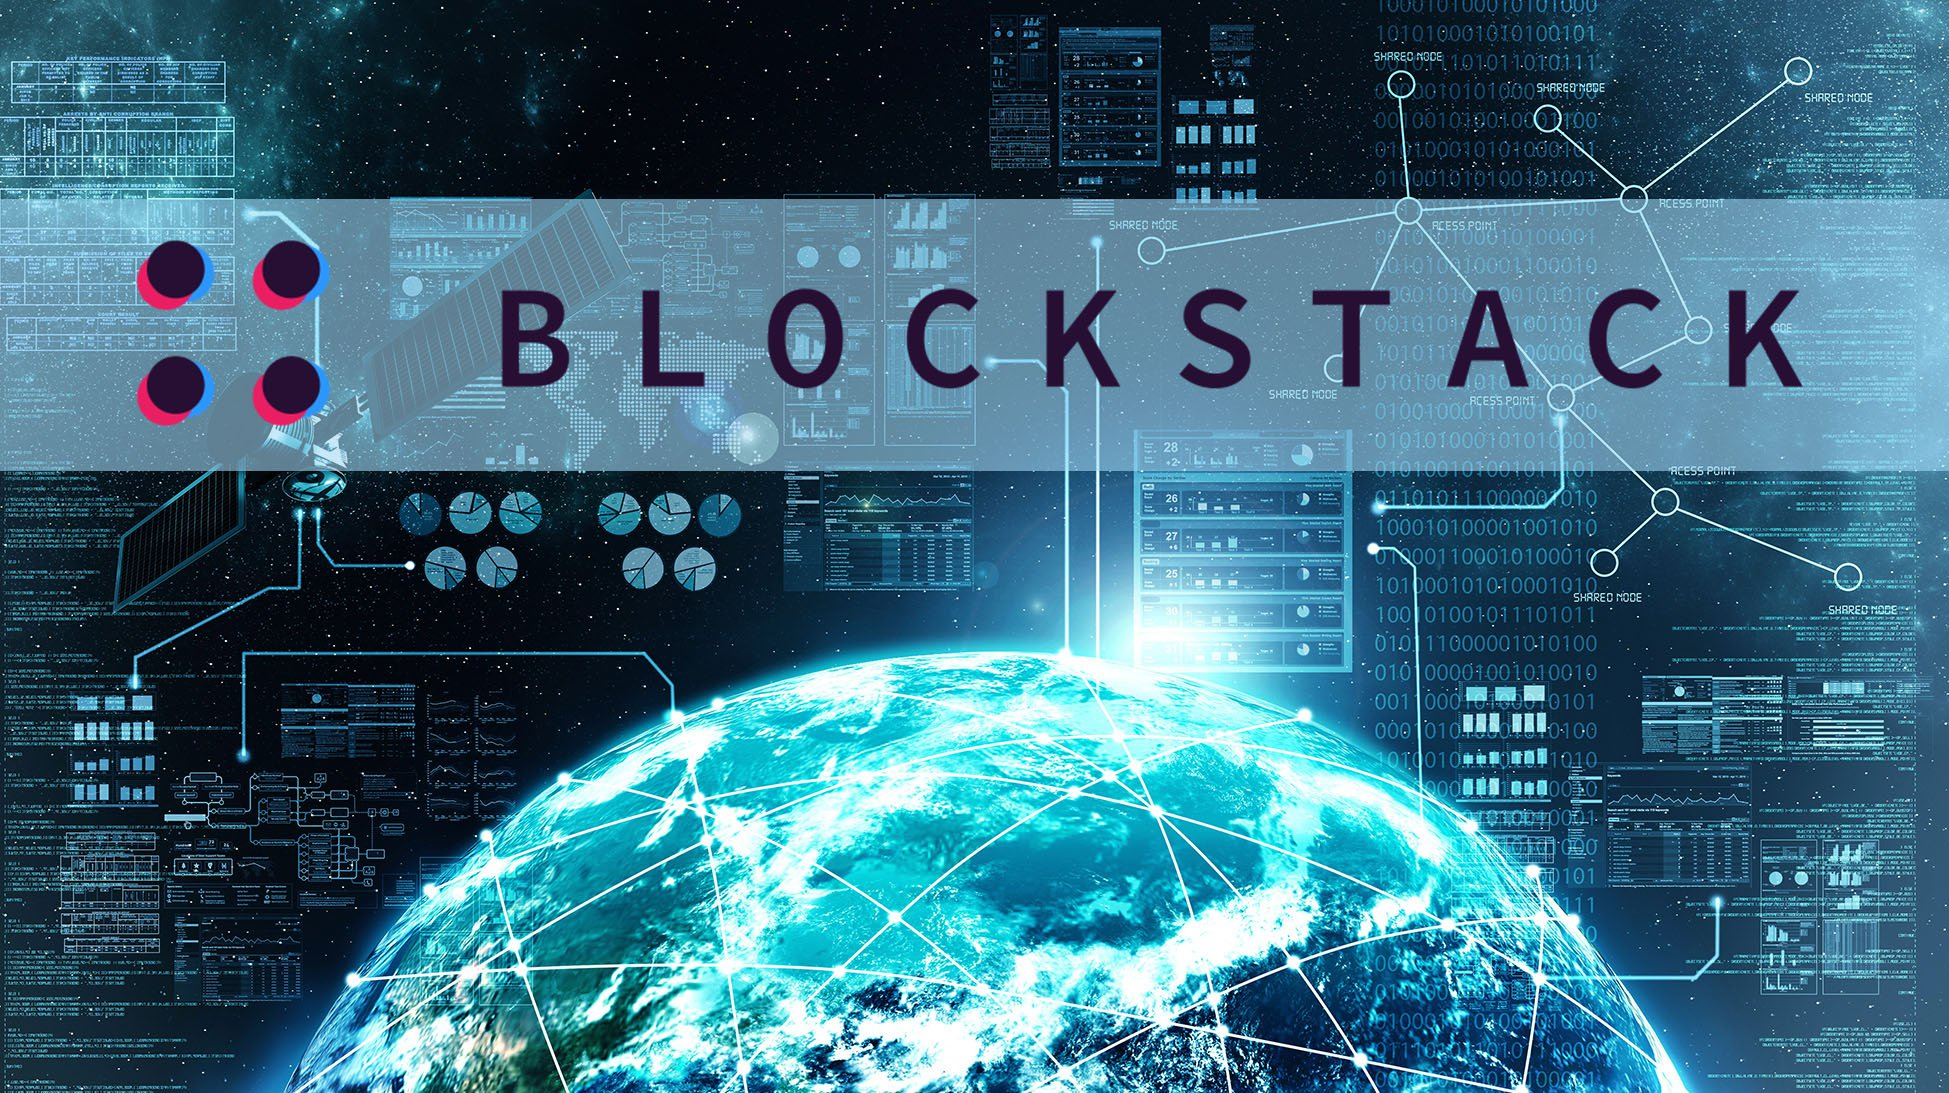 Blockstack Partners with VCs to Launch $25 Million Blockstack Signature Fund